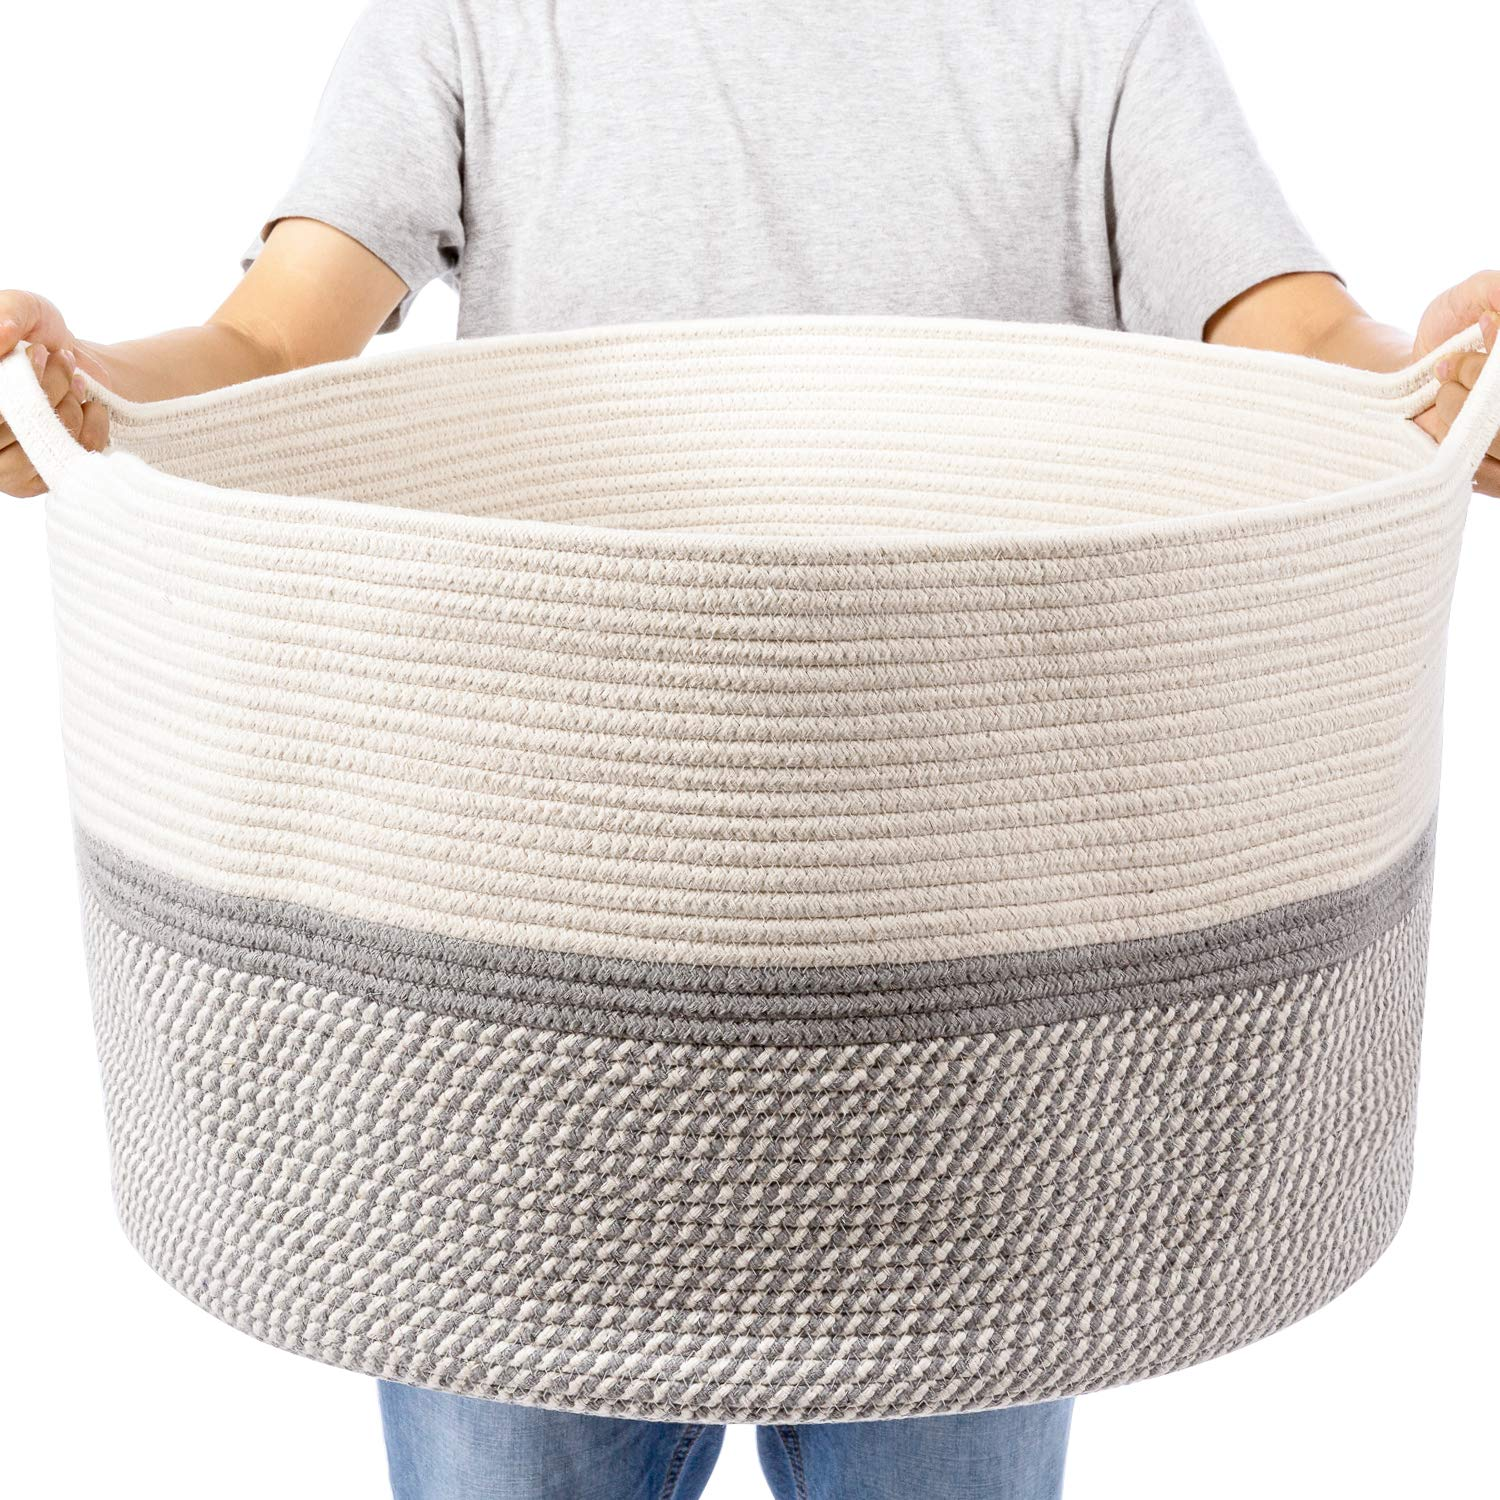 """XXL Extra Large Cotton Rope Woven Basket, Throw Blanket Storage Basket with Handles, Decorative Clothes Hamper - 22"""" x 22"""" x 14"""""""